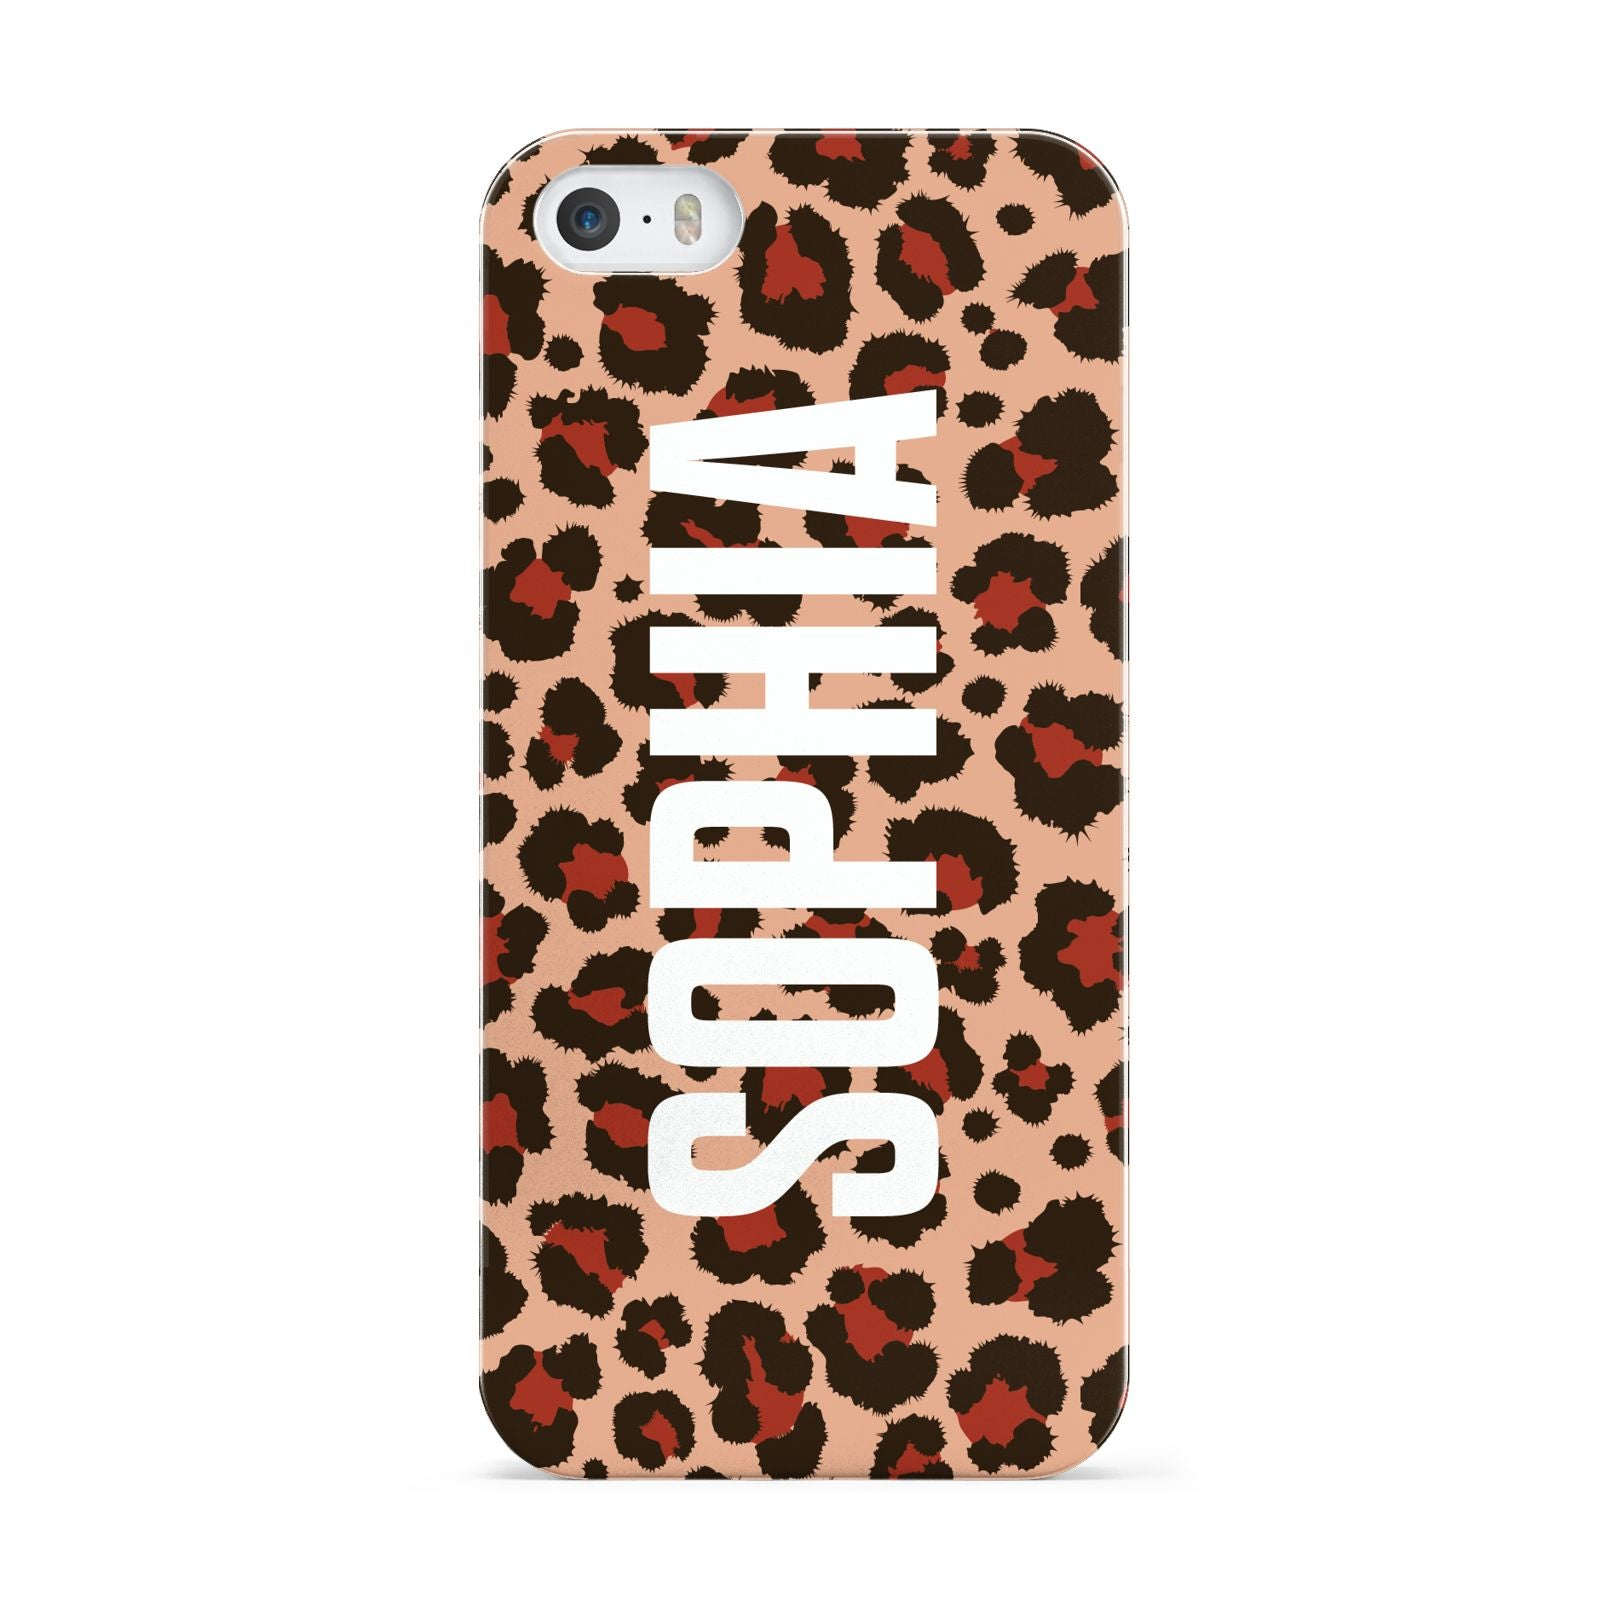 Personalised Leopard Print Name Apple iPhone 5 Case